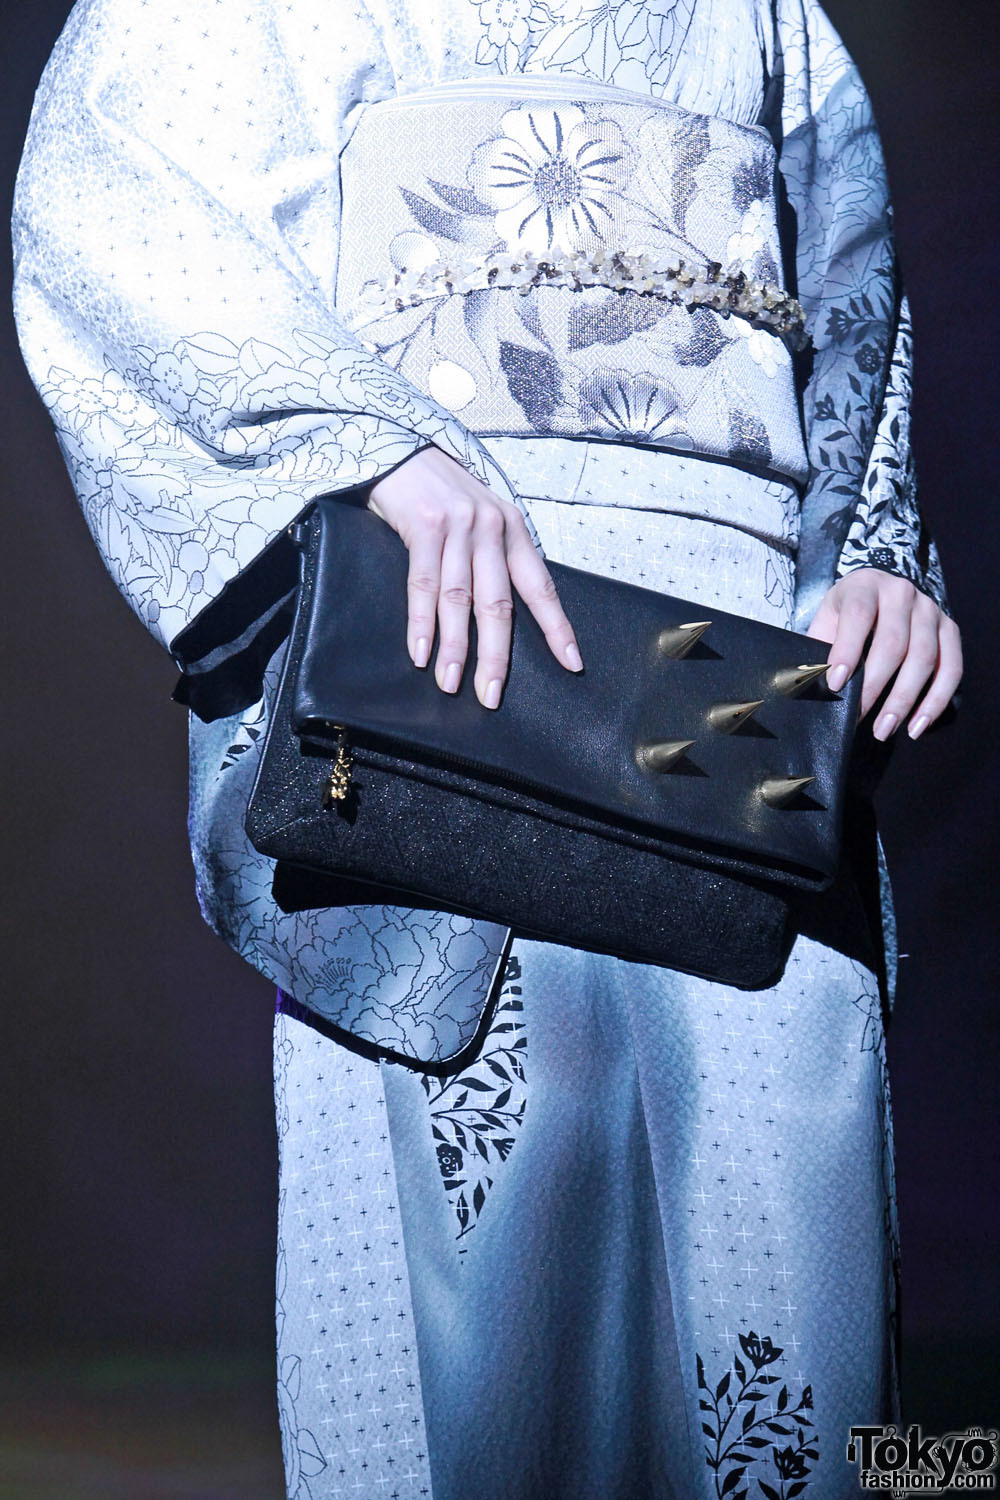 Very dangerous kimono purse seen on the runway today at Tokyo Fashion Week!